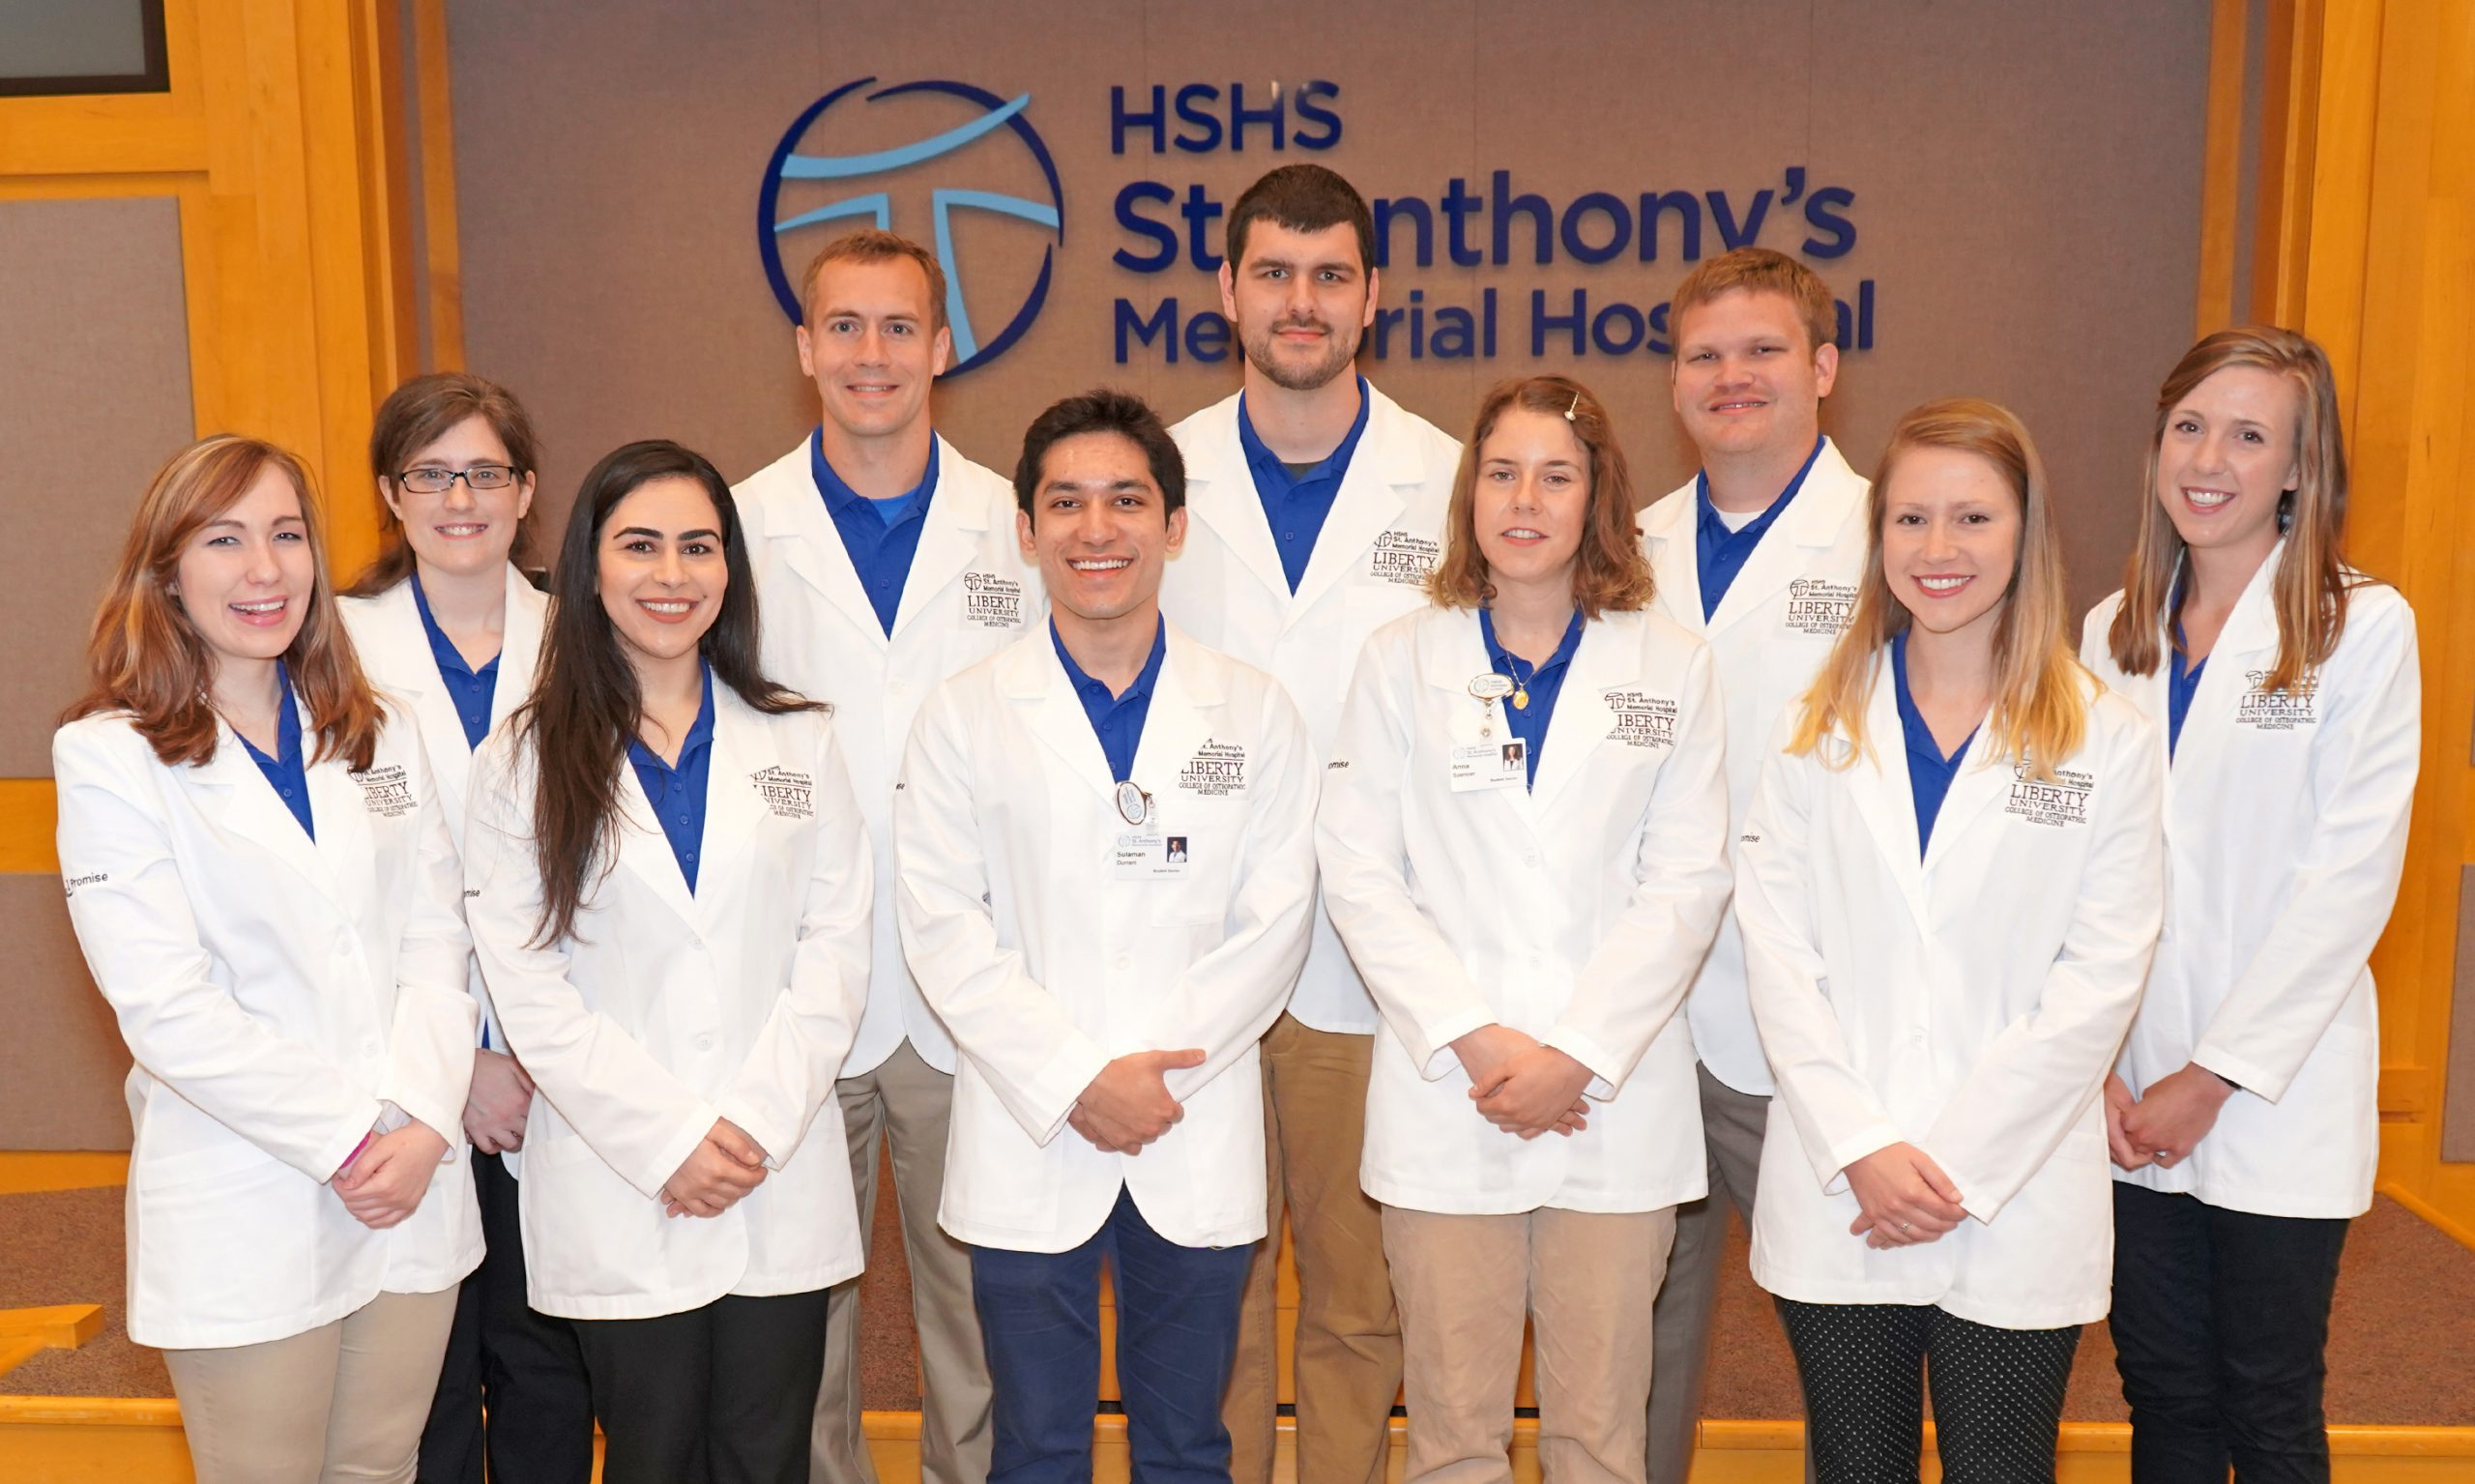 HSHS St. Anthony's Memorial Hospital welcomes 2018-19 third-year medical students